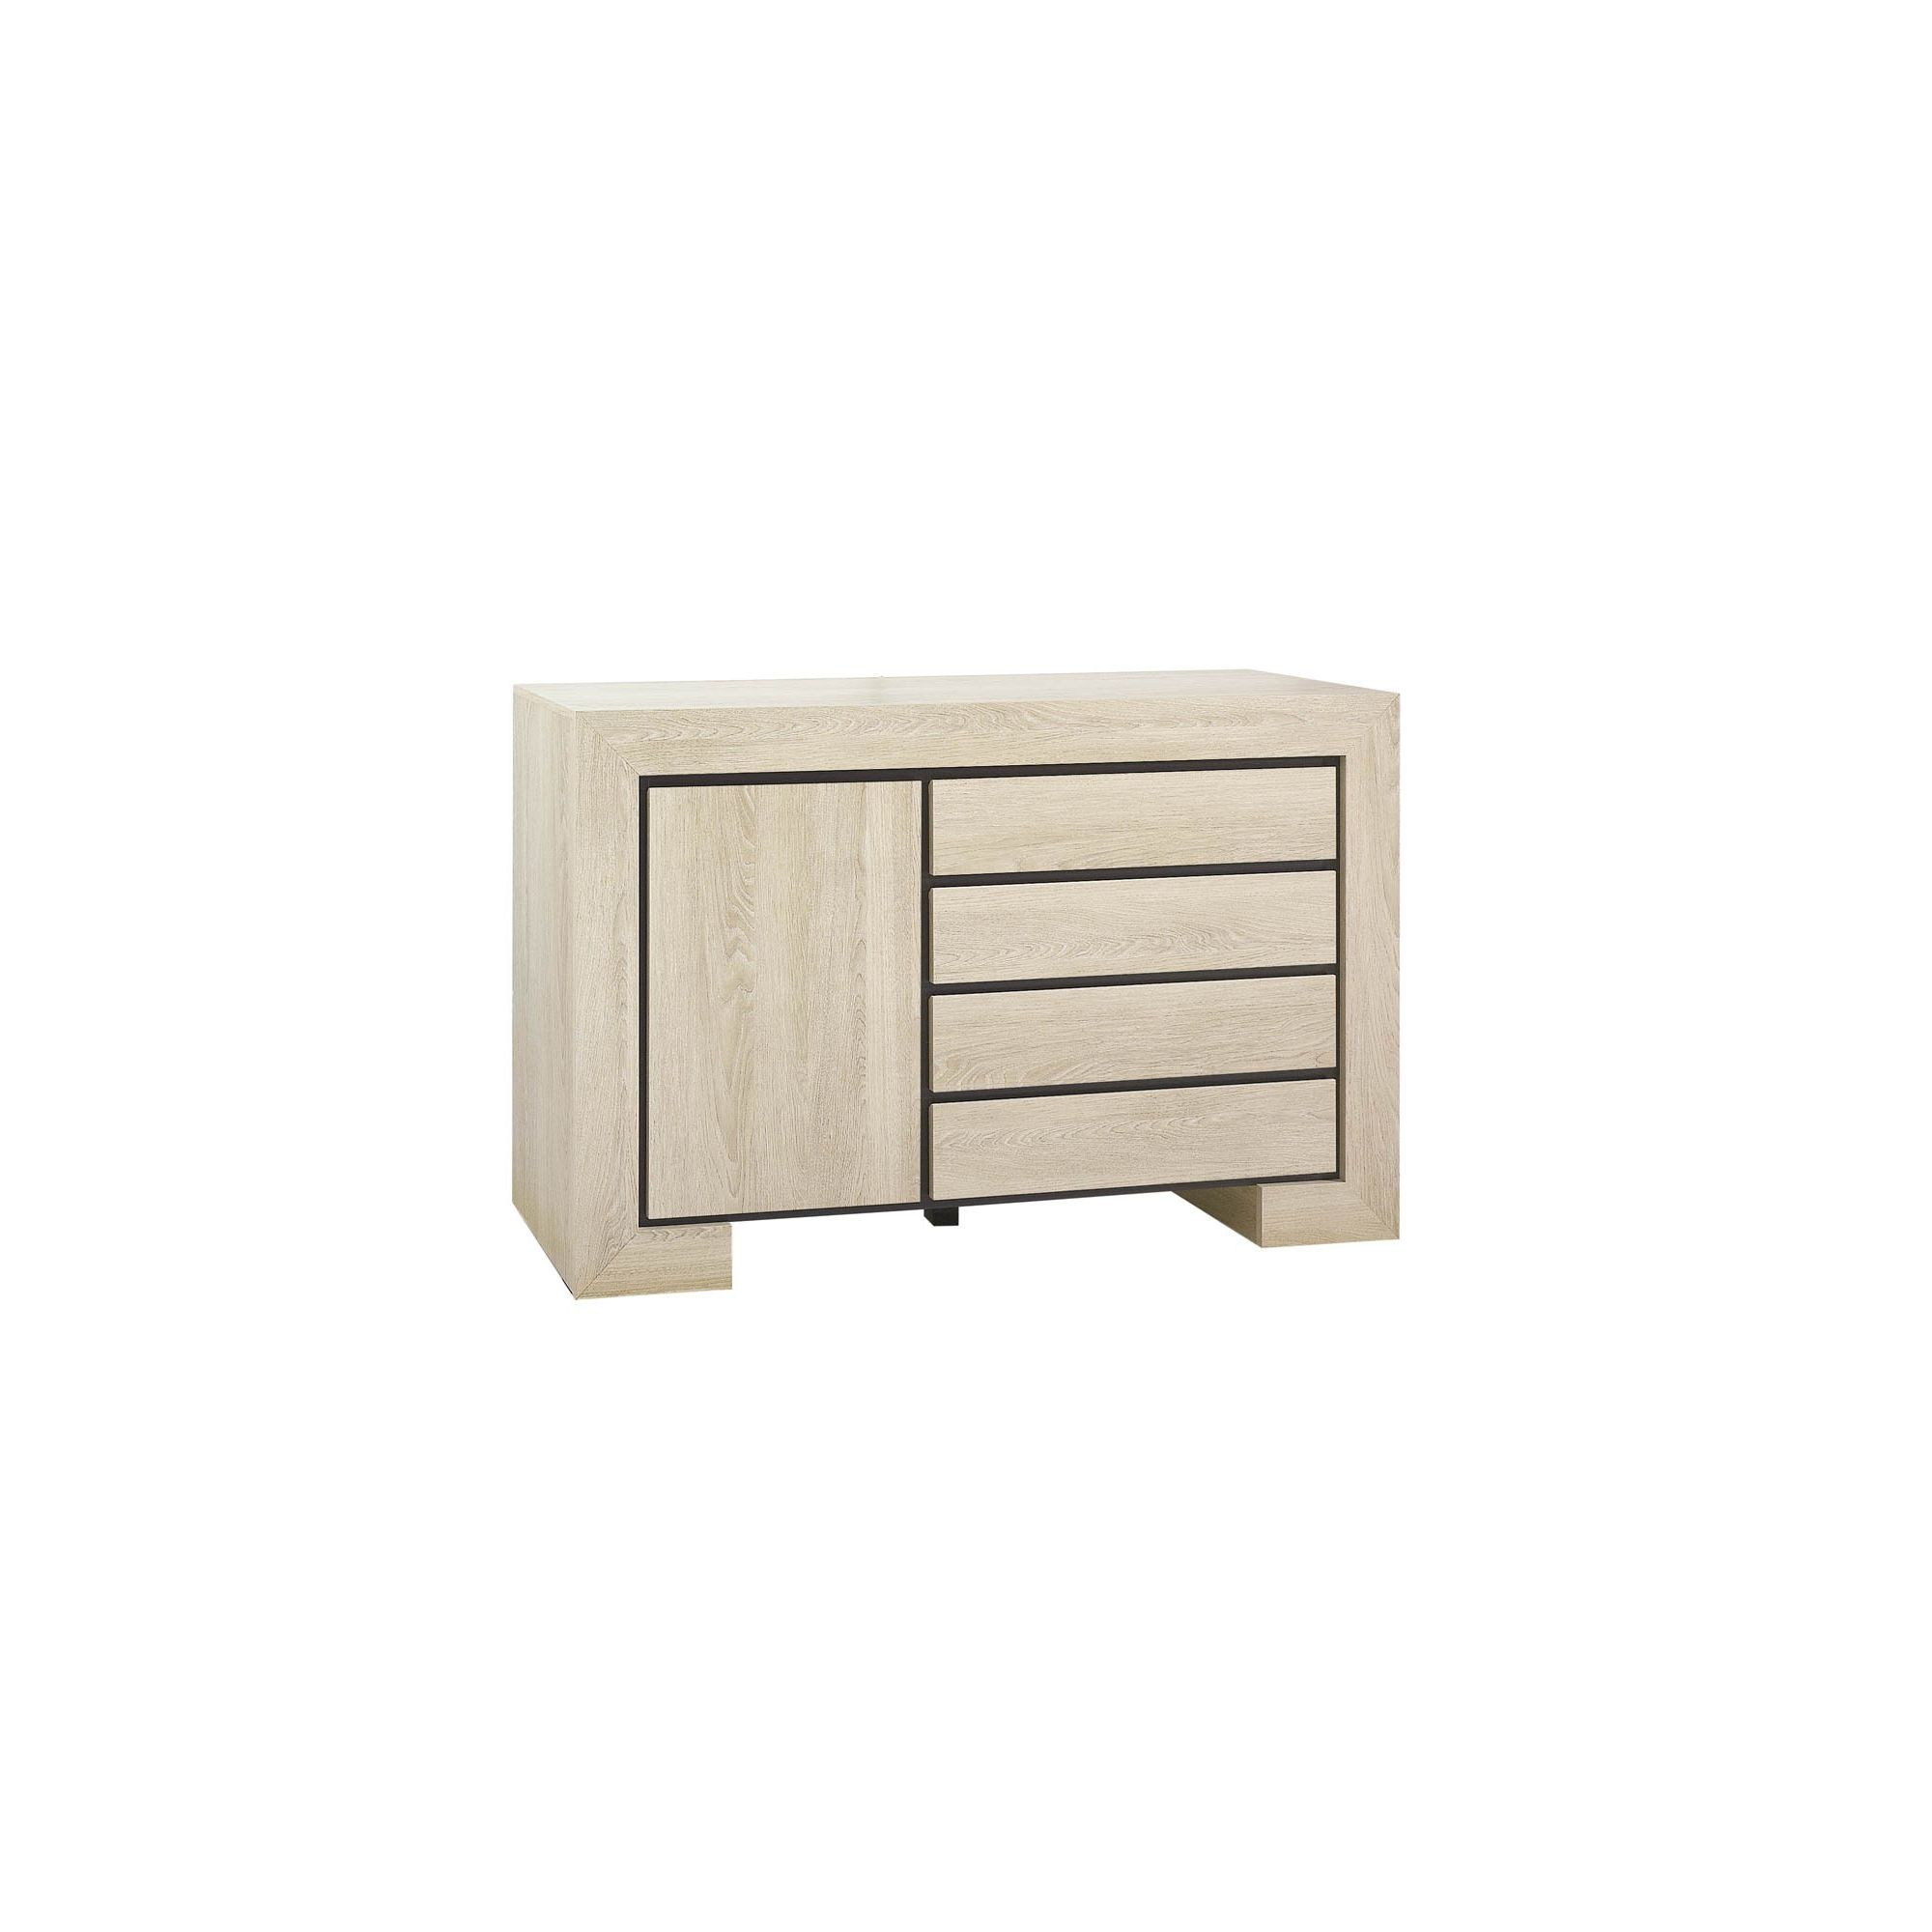 Urbane Designs Dominica Four Drawer Sideboard in Oak at Tesco Direct